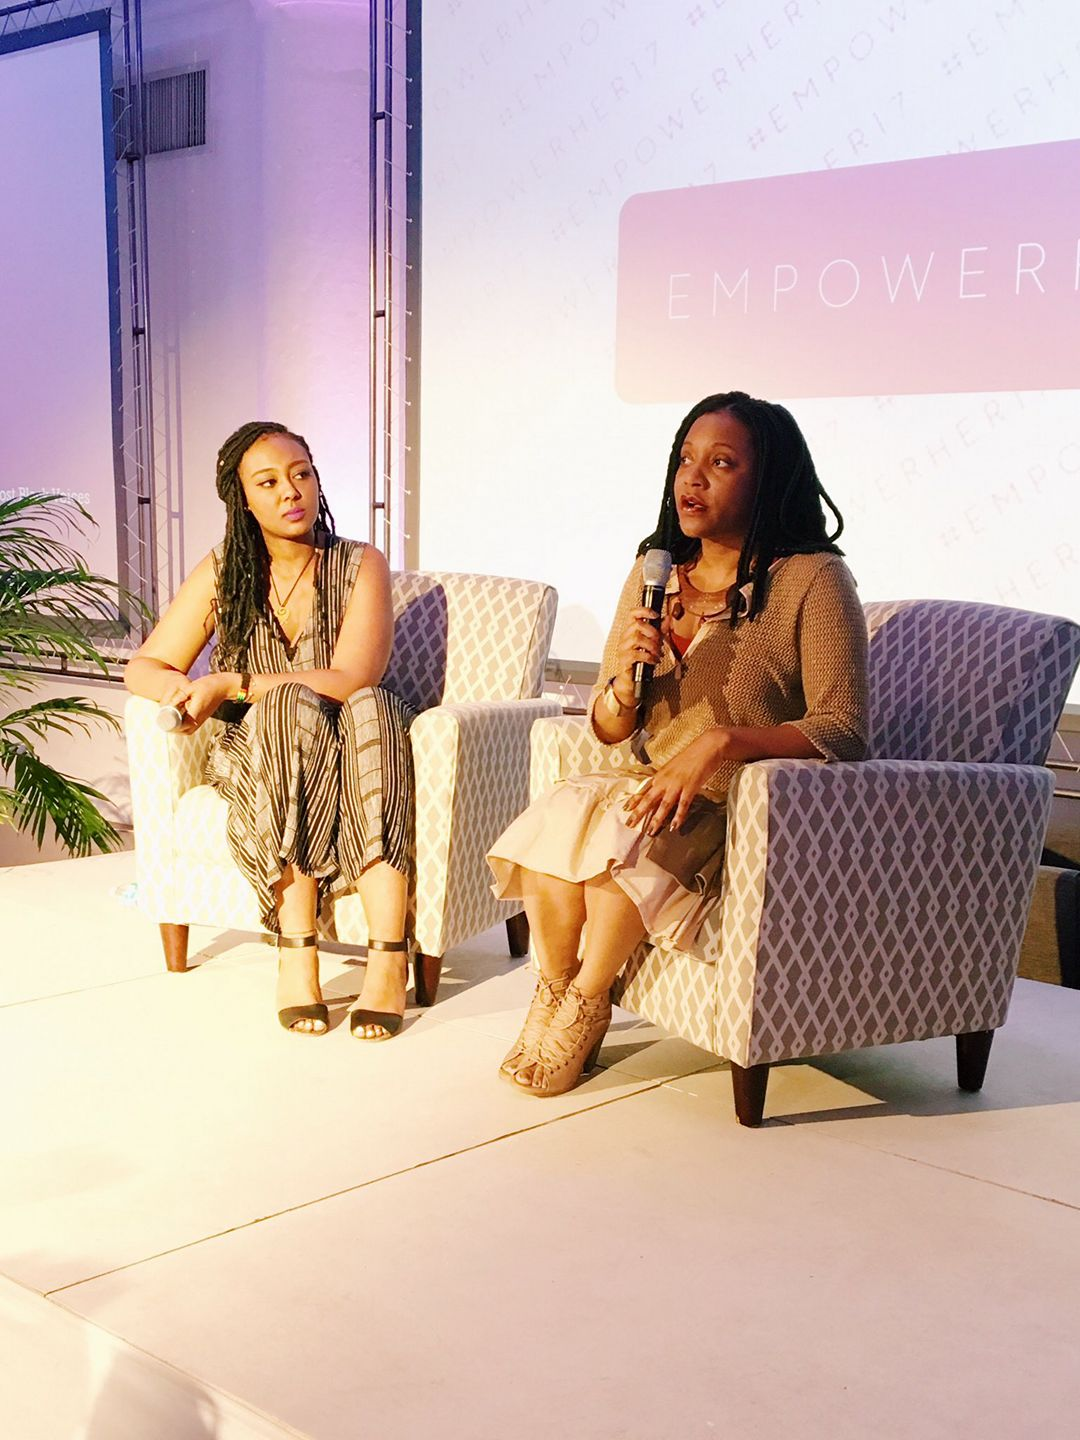 HuffPo's Lilly Workneh and I discuss a wide variety of topics during our session at the EmpowerHer 17 Conference.